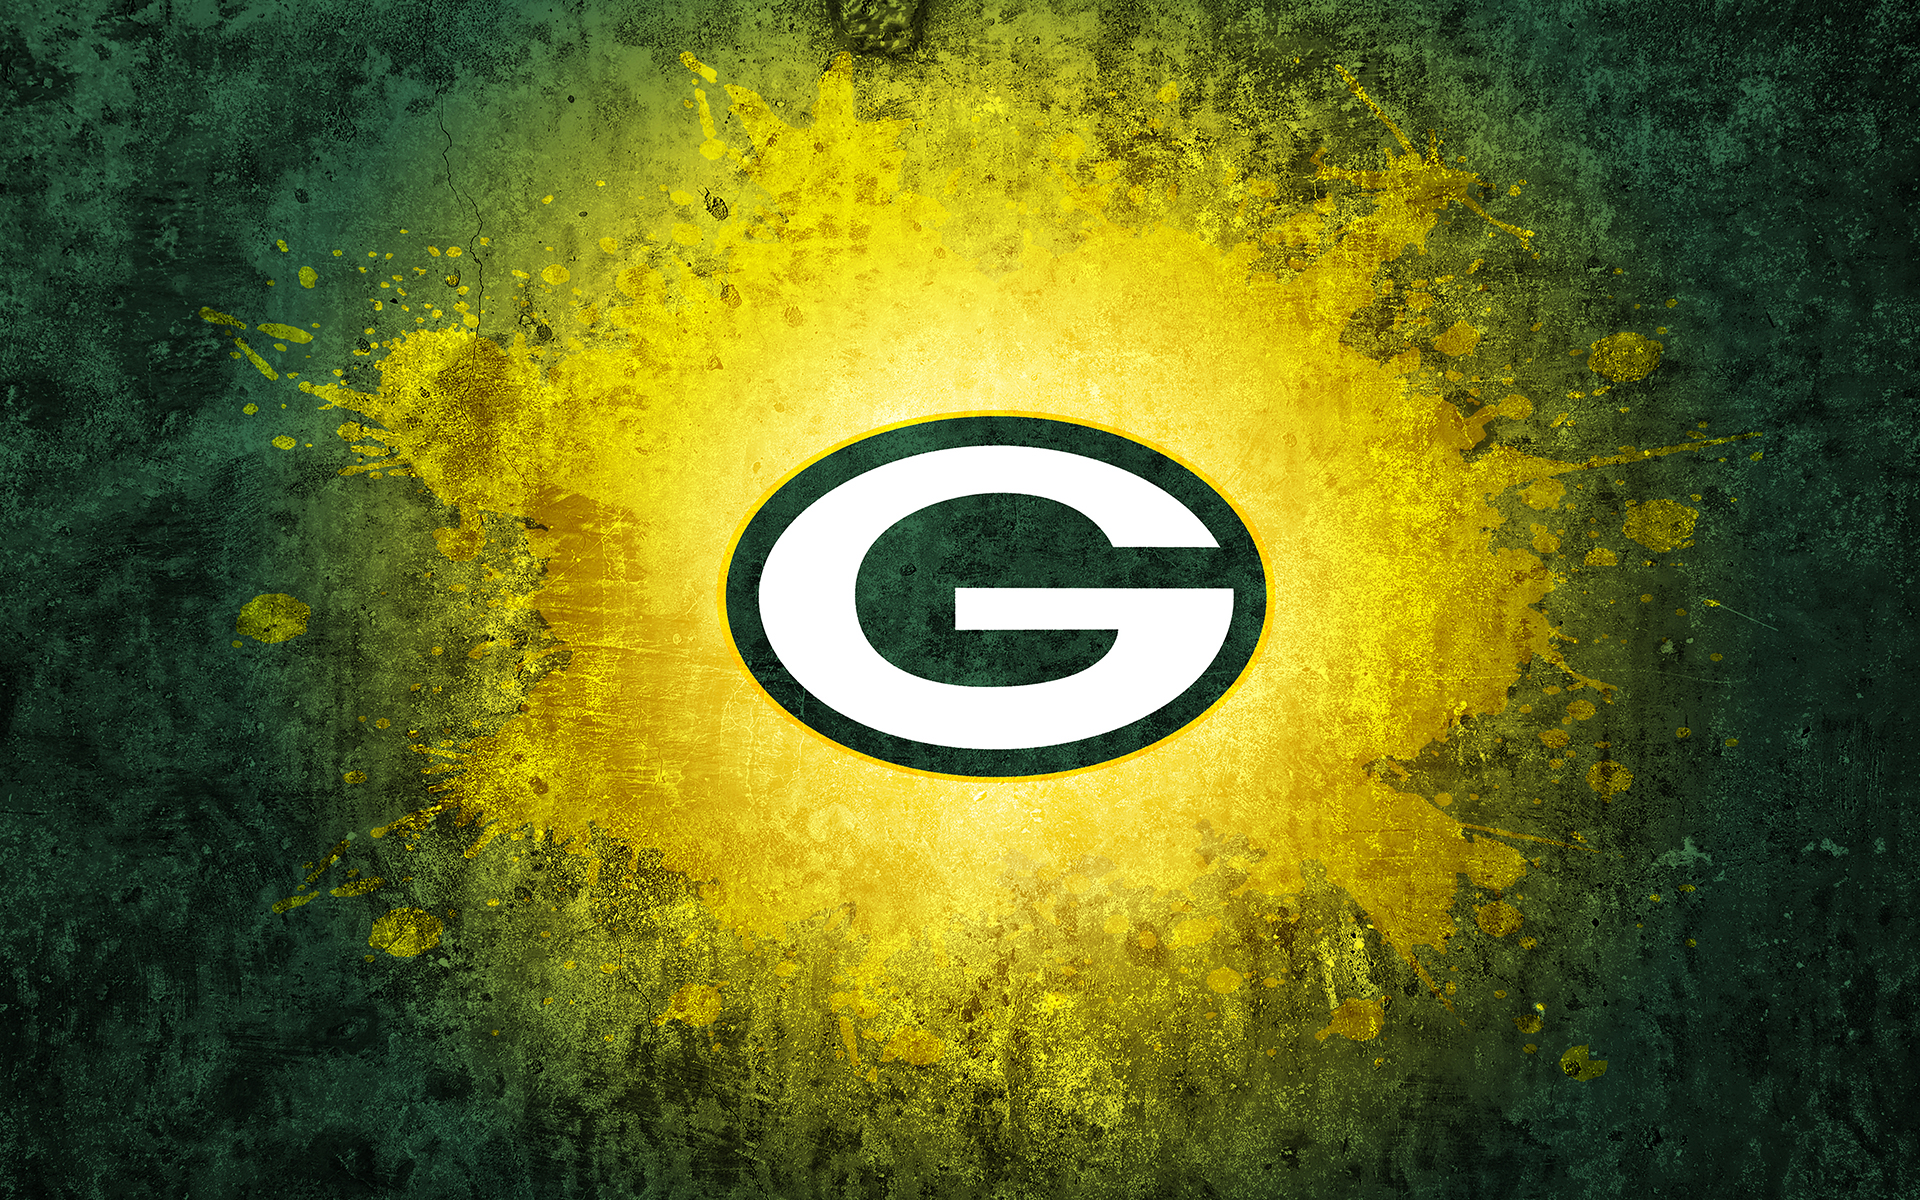 Green Bay Packers 14 Cool Wallpaper Green Bay Packers 14 1920x1200